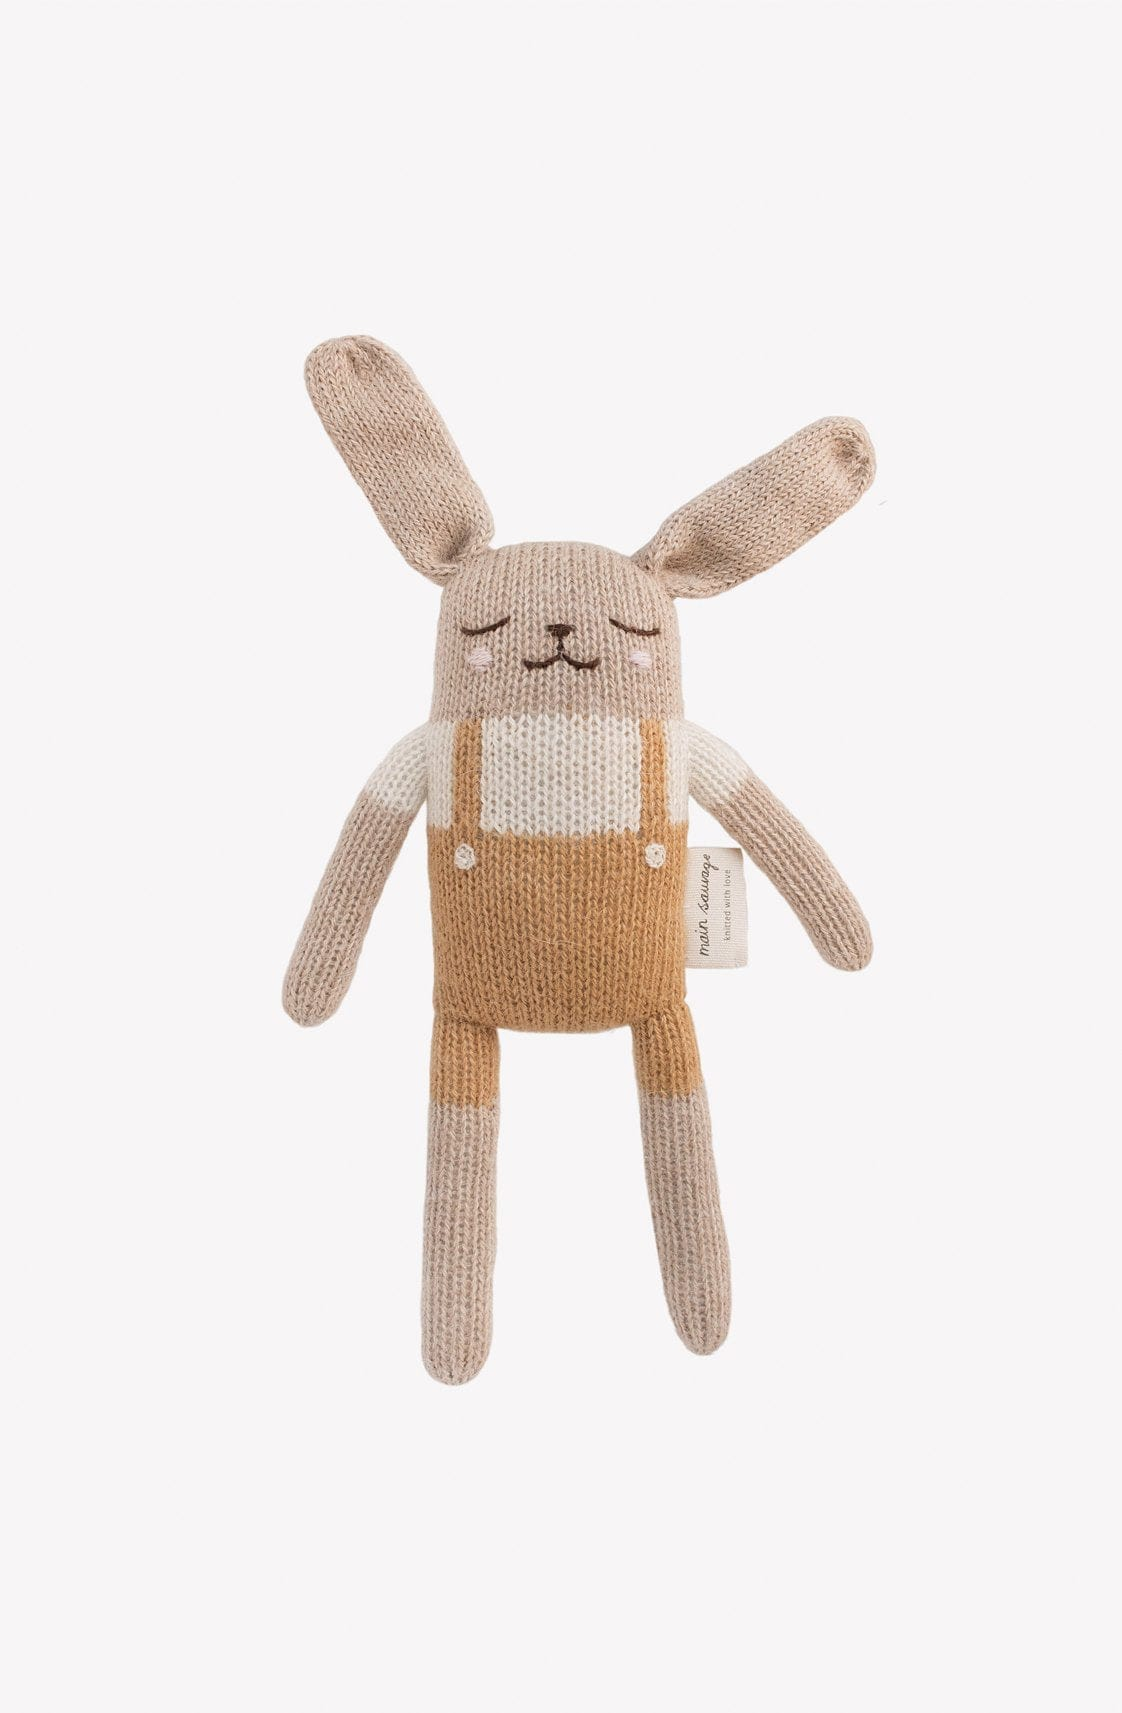 Main Sauvage Bunny Soft Toy, Mustard Overalls - Hello Little Birdie